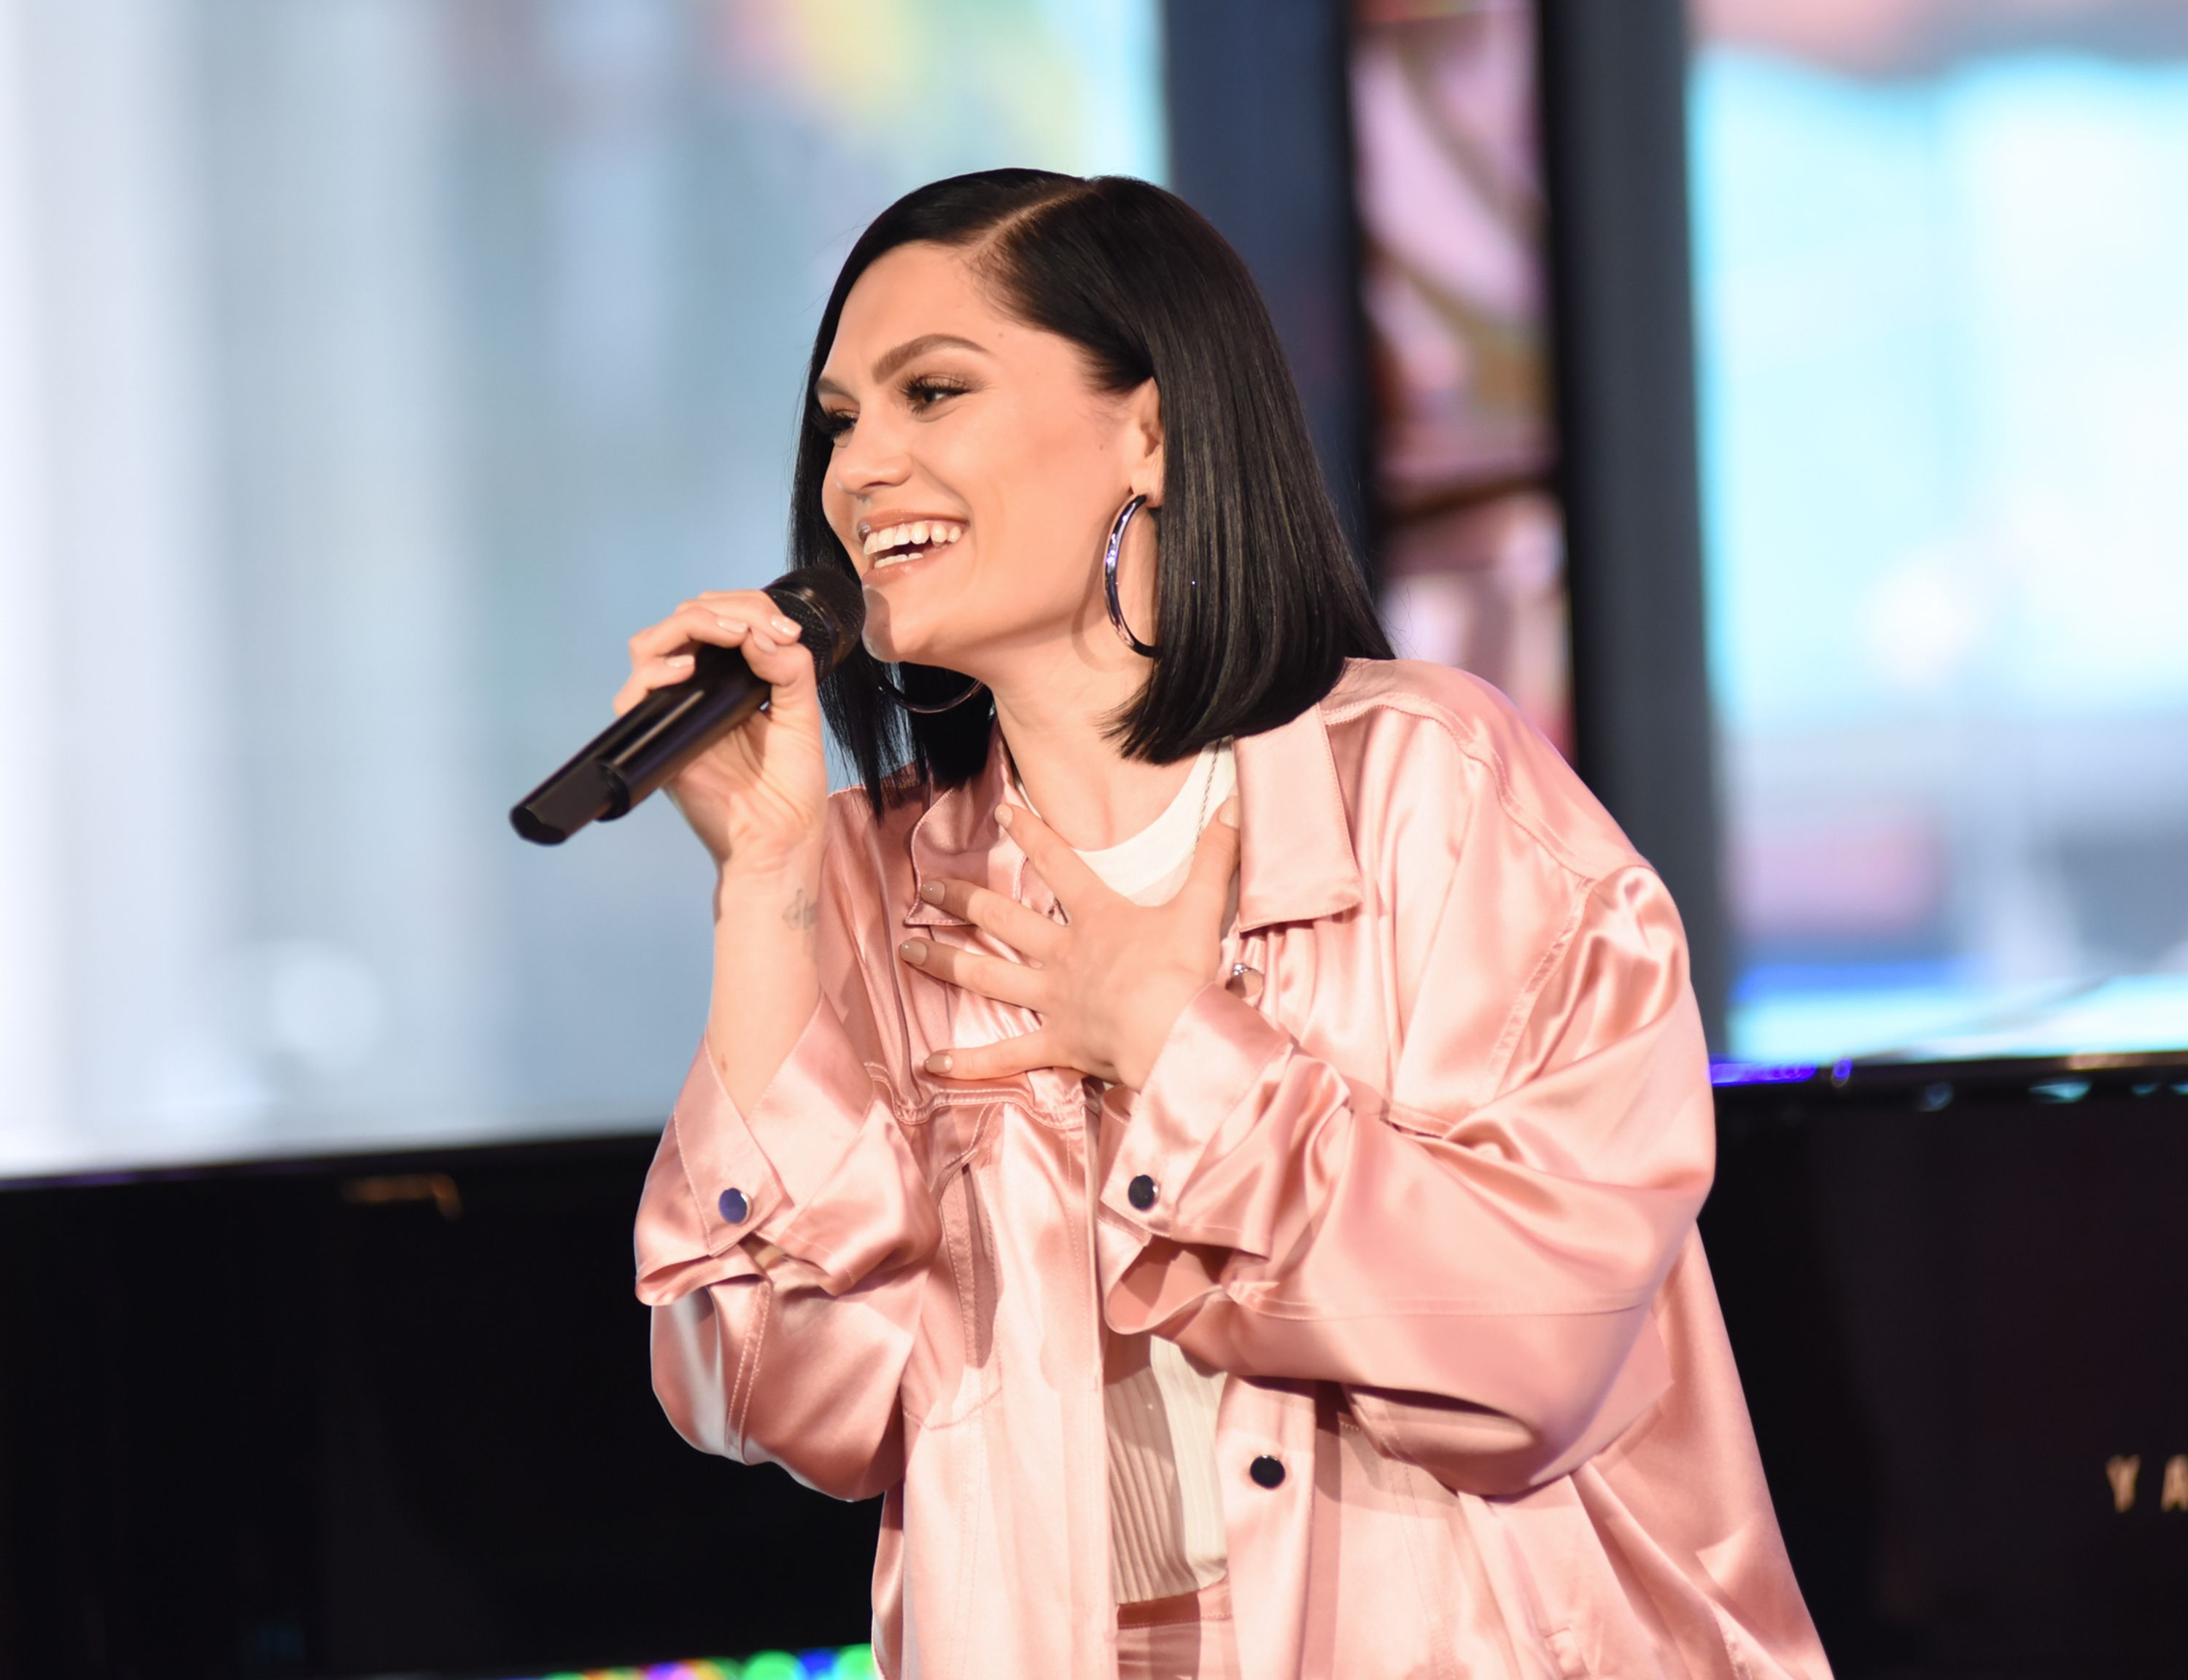 """Jessie J performs live on """"Good Morning America,"""" on Tuesday, April 29, 2018 